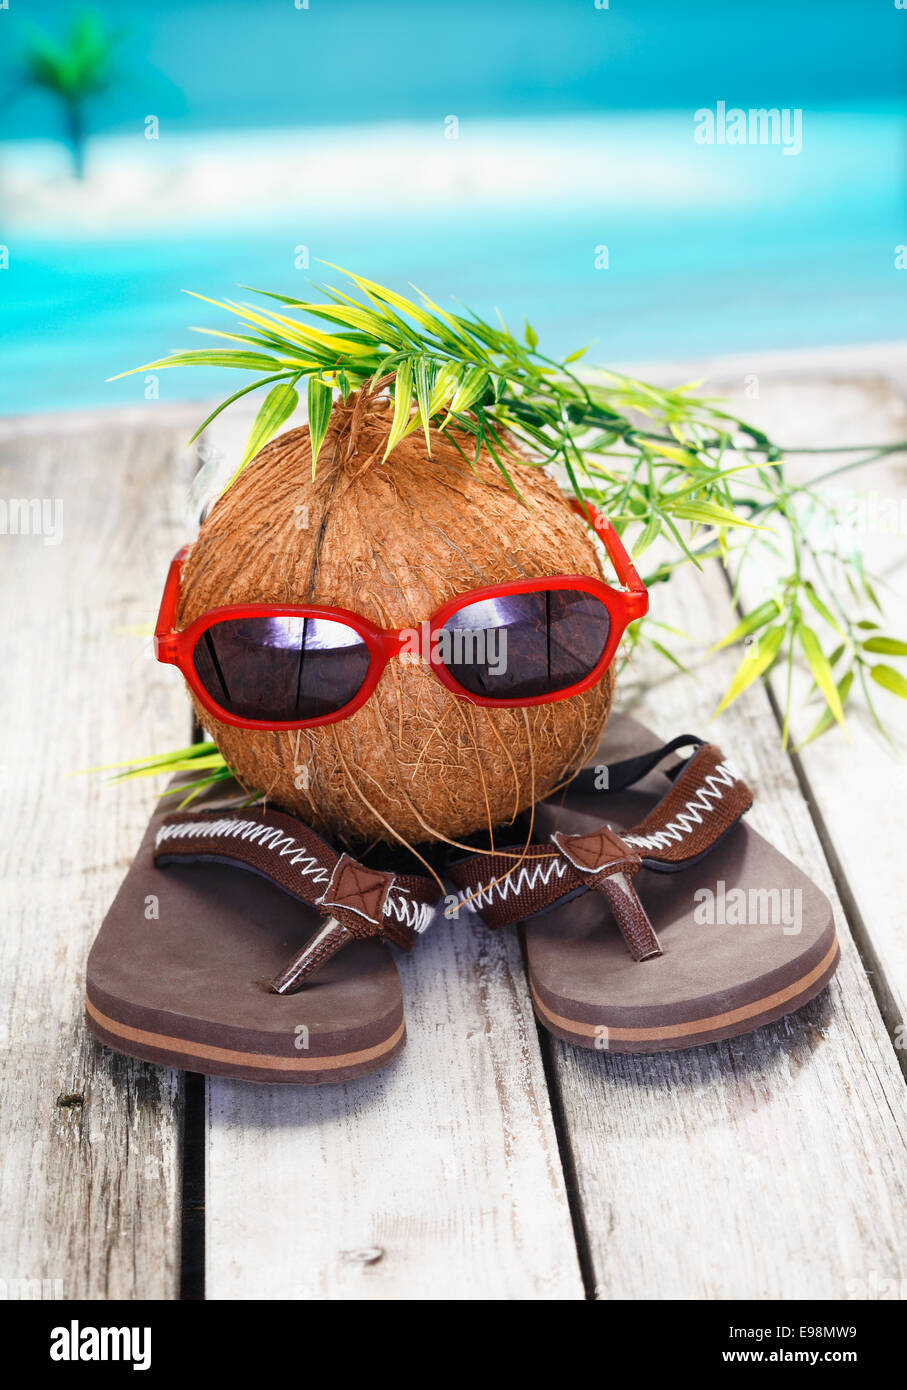 Humorous spoof of a cool coconut adventurer with a leafy hairstyle and trendy red sunglasses - Stock Image